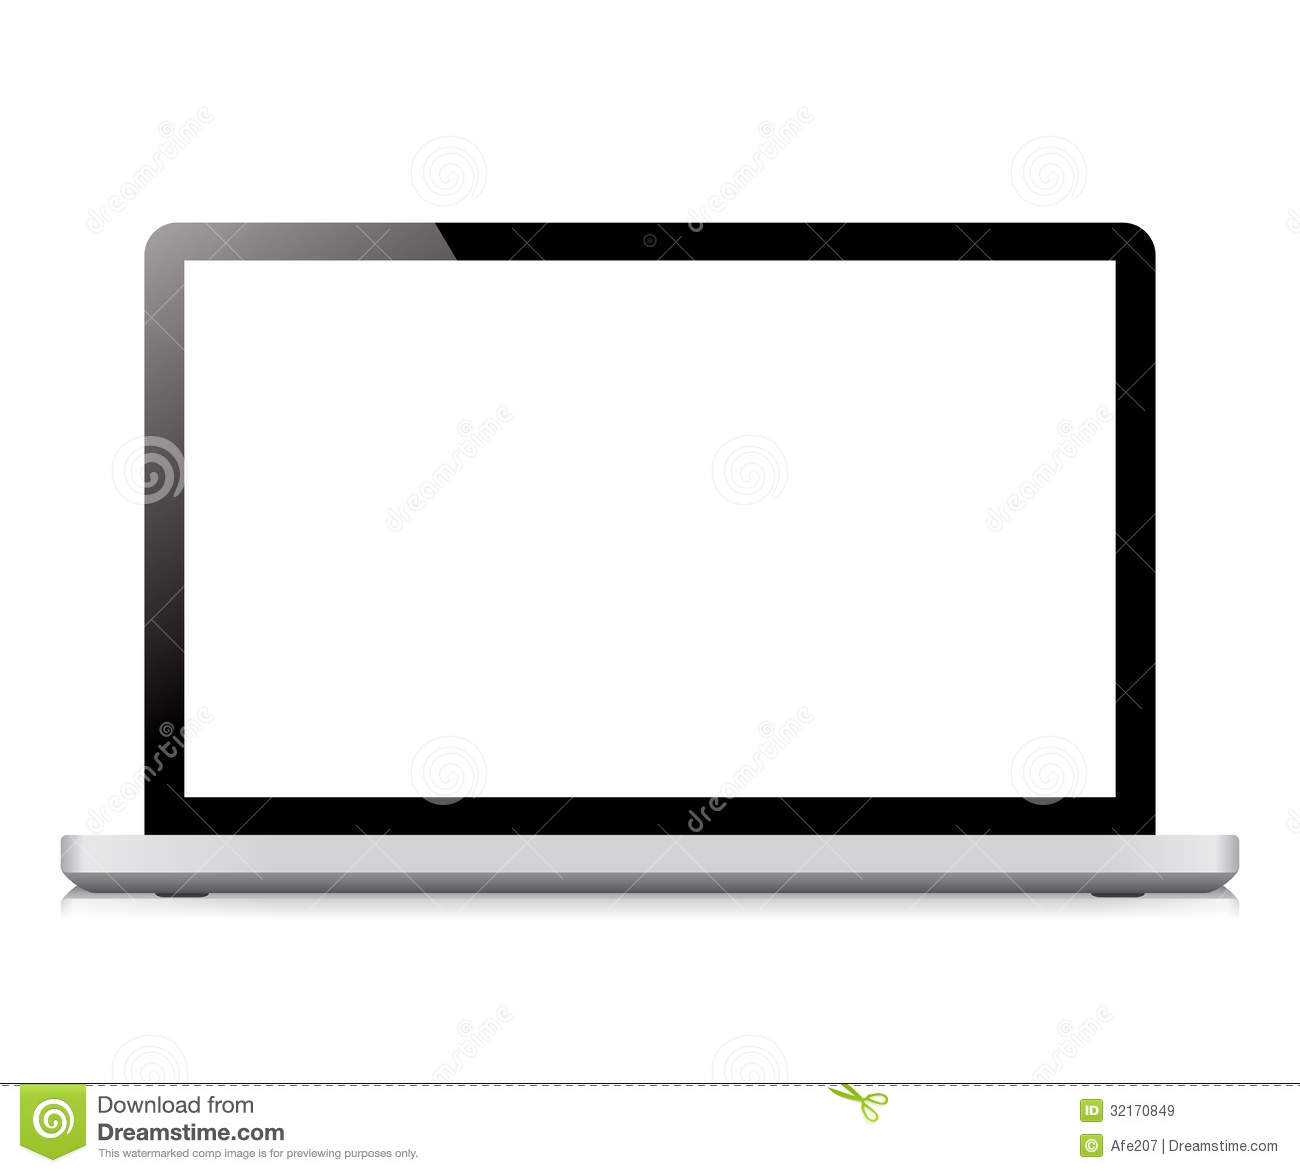 how to change laptop screen display